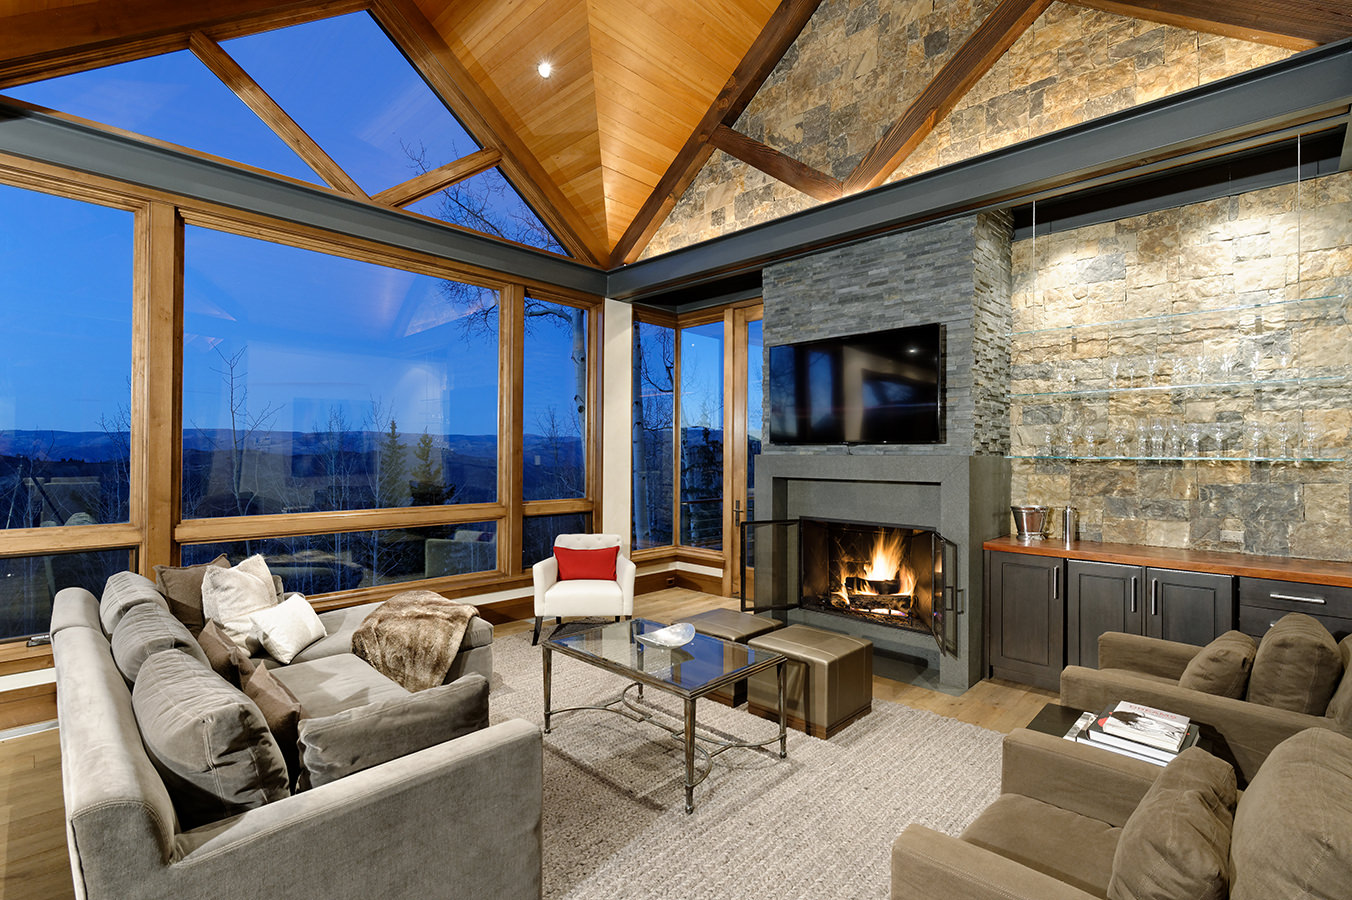 Aspen Snowmass Basalt interior photography